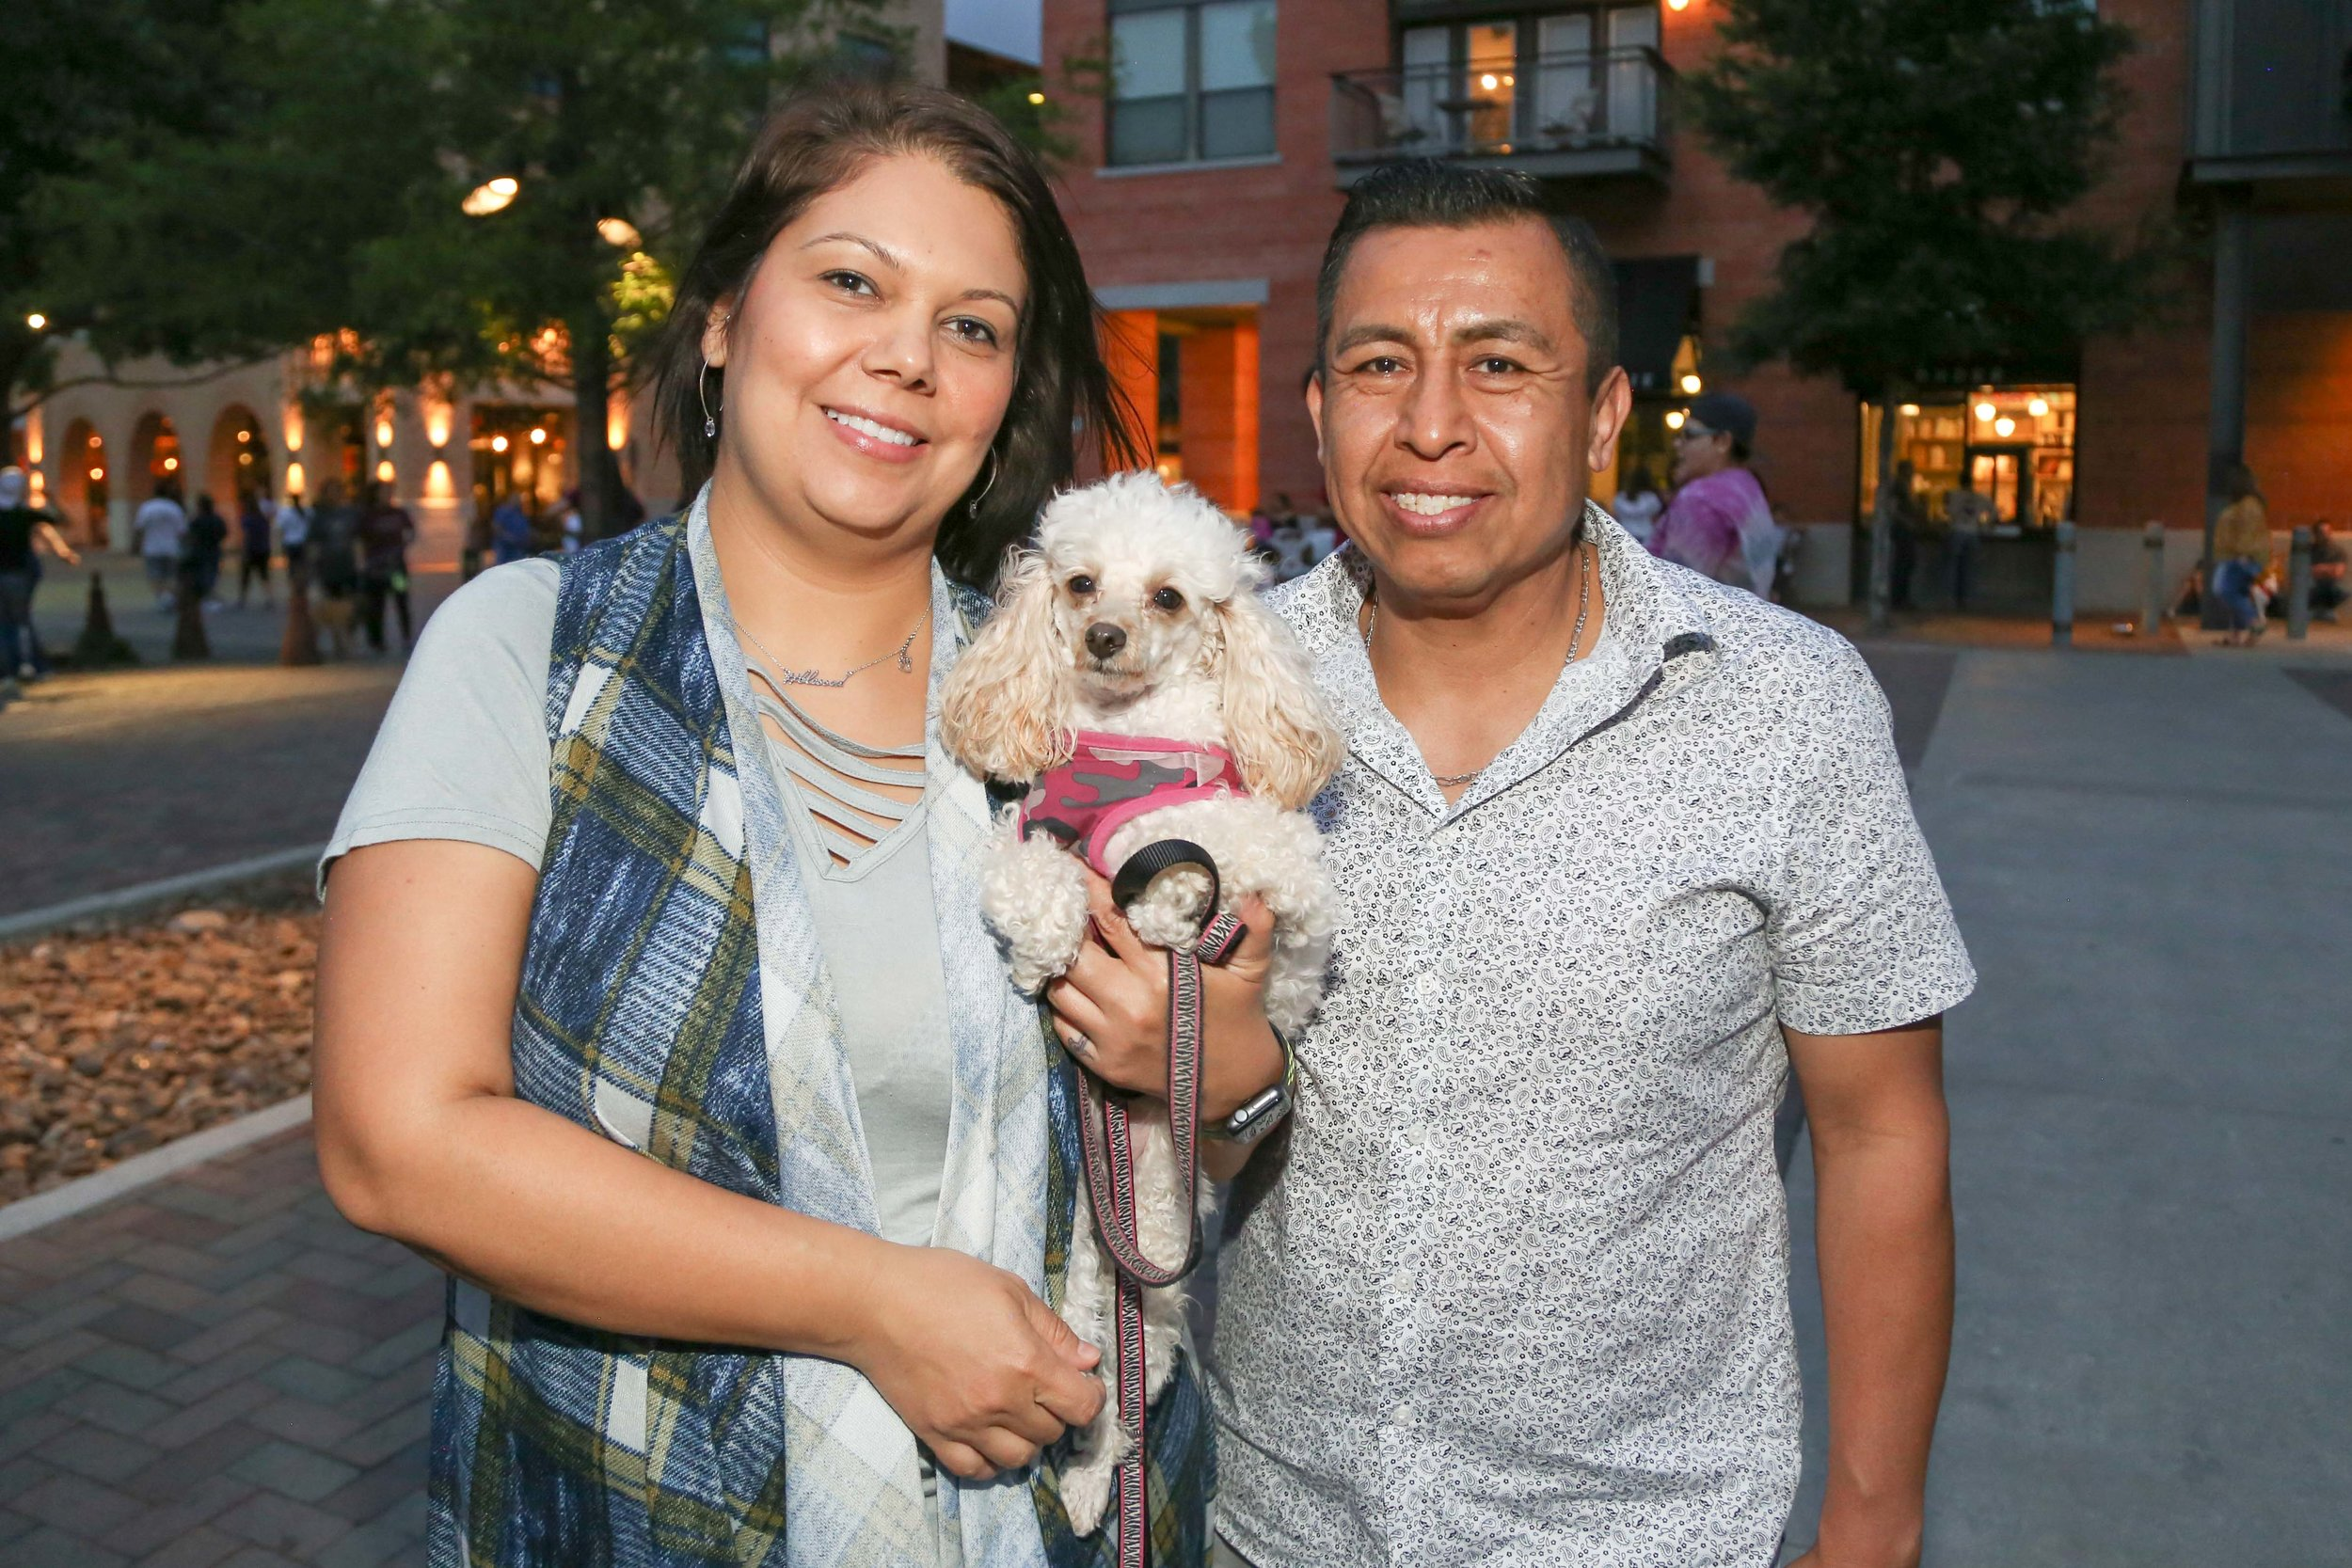 Connie Ramos with Francisco Marino and their poodle, Lola. (Photo by:  GA Media Media Productions .)